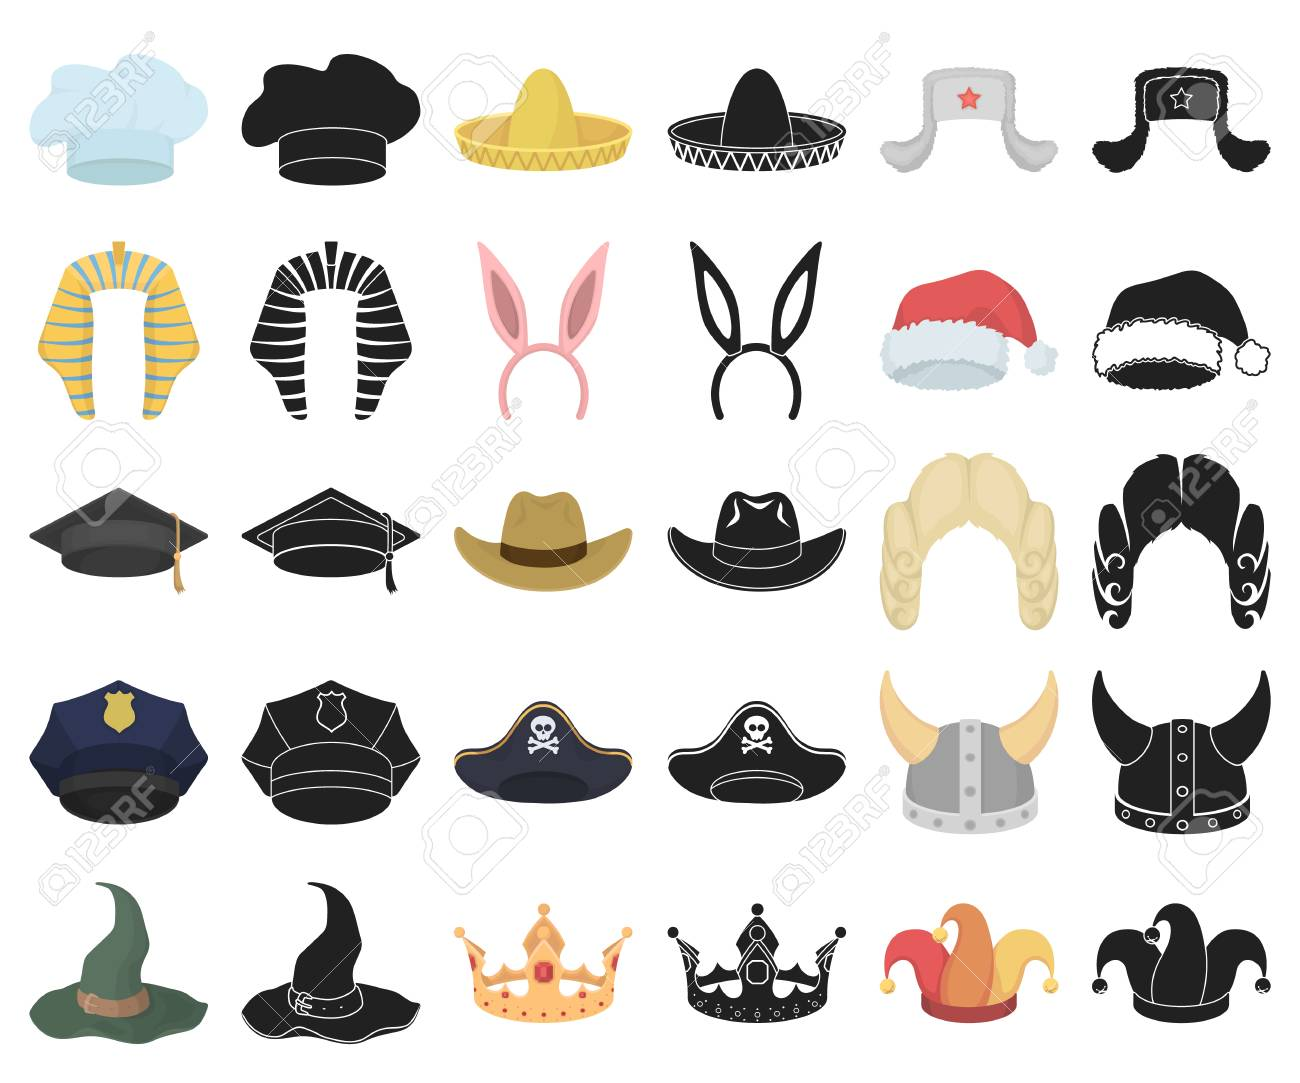 Different Kinds Of Hats Cartoon Black Icons In Set Collection Royalty Free Cliparts Vectors And Stock Illustration Image 117298146